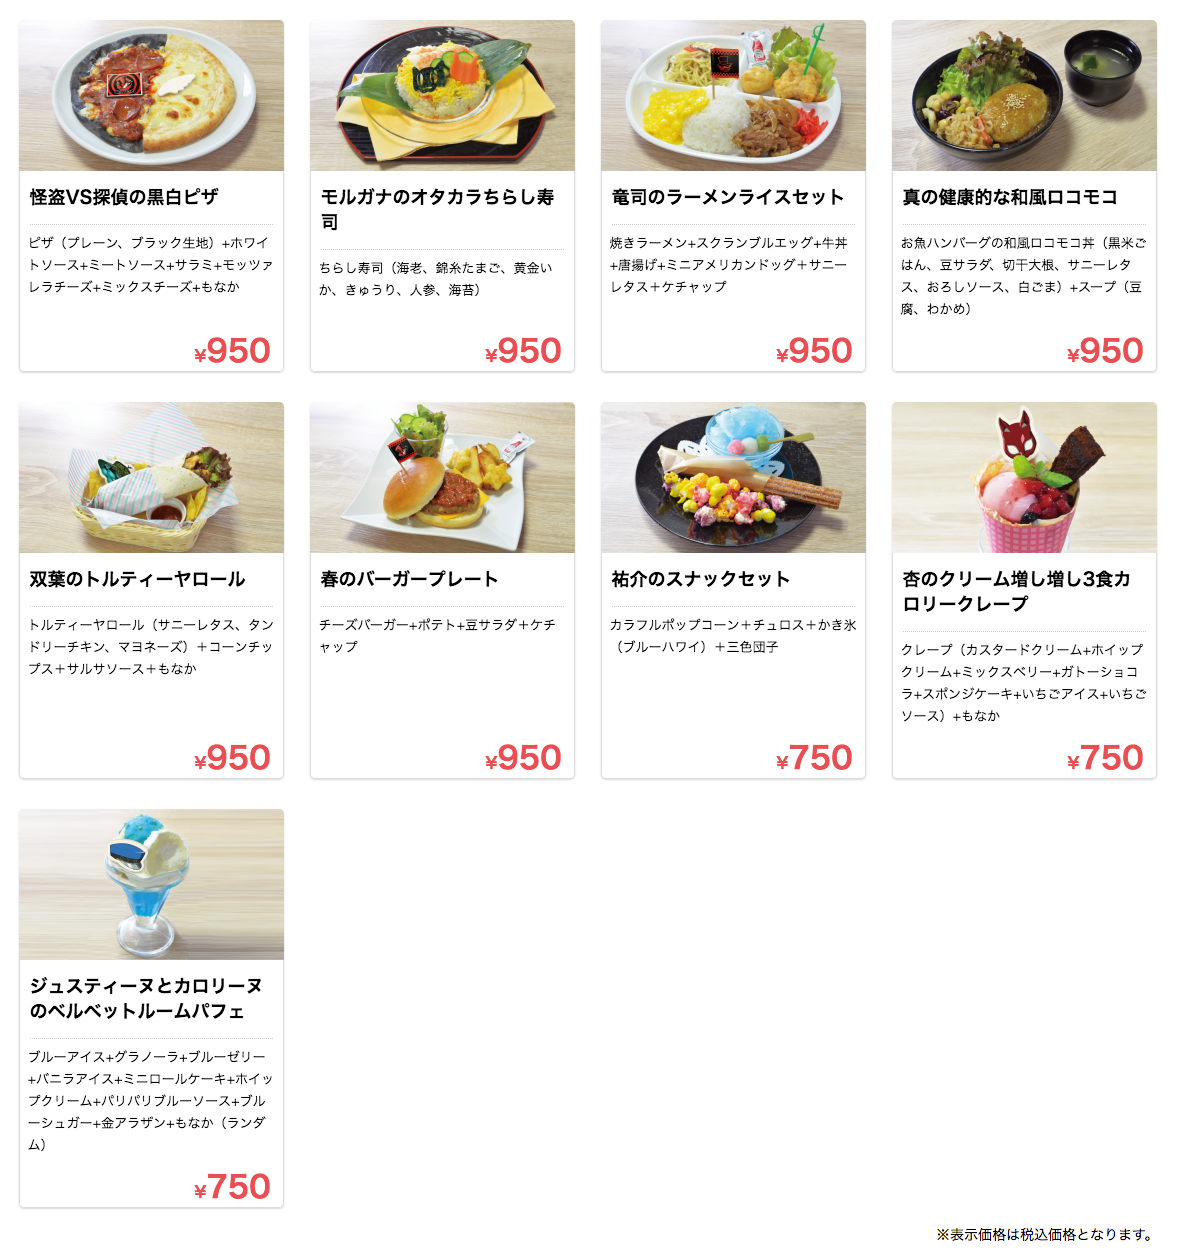 screencapture-cafe-animate-co-jp-event-p5a1810-foods-2018-10-14-10_28_45.png